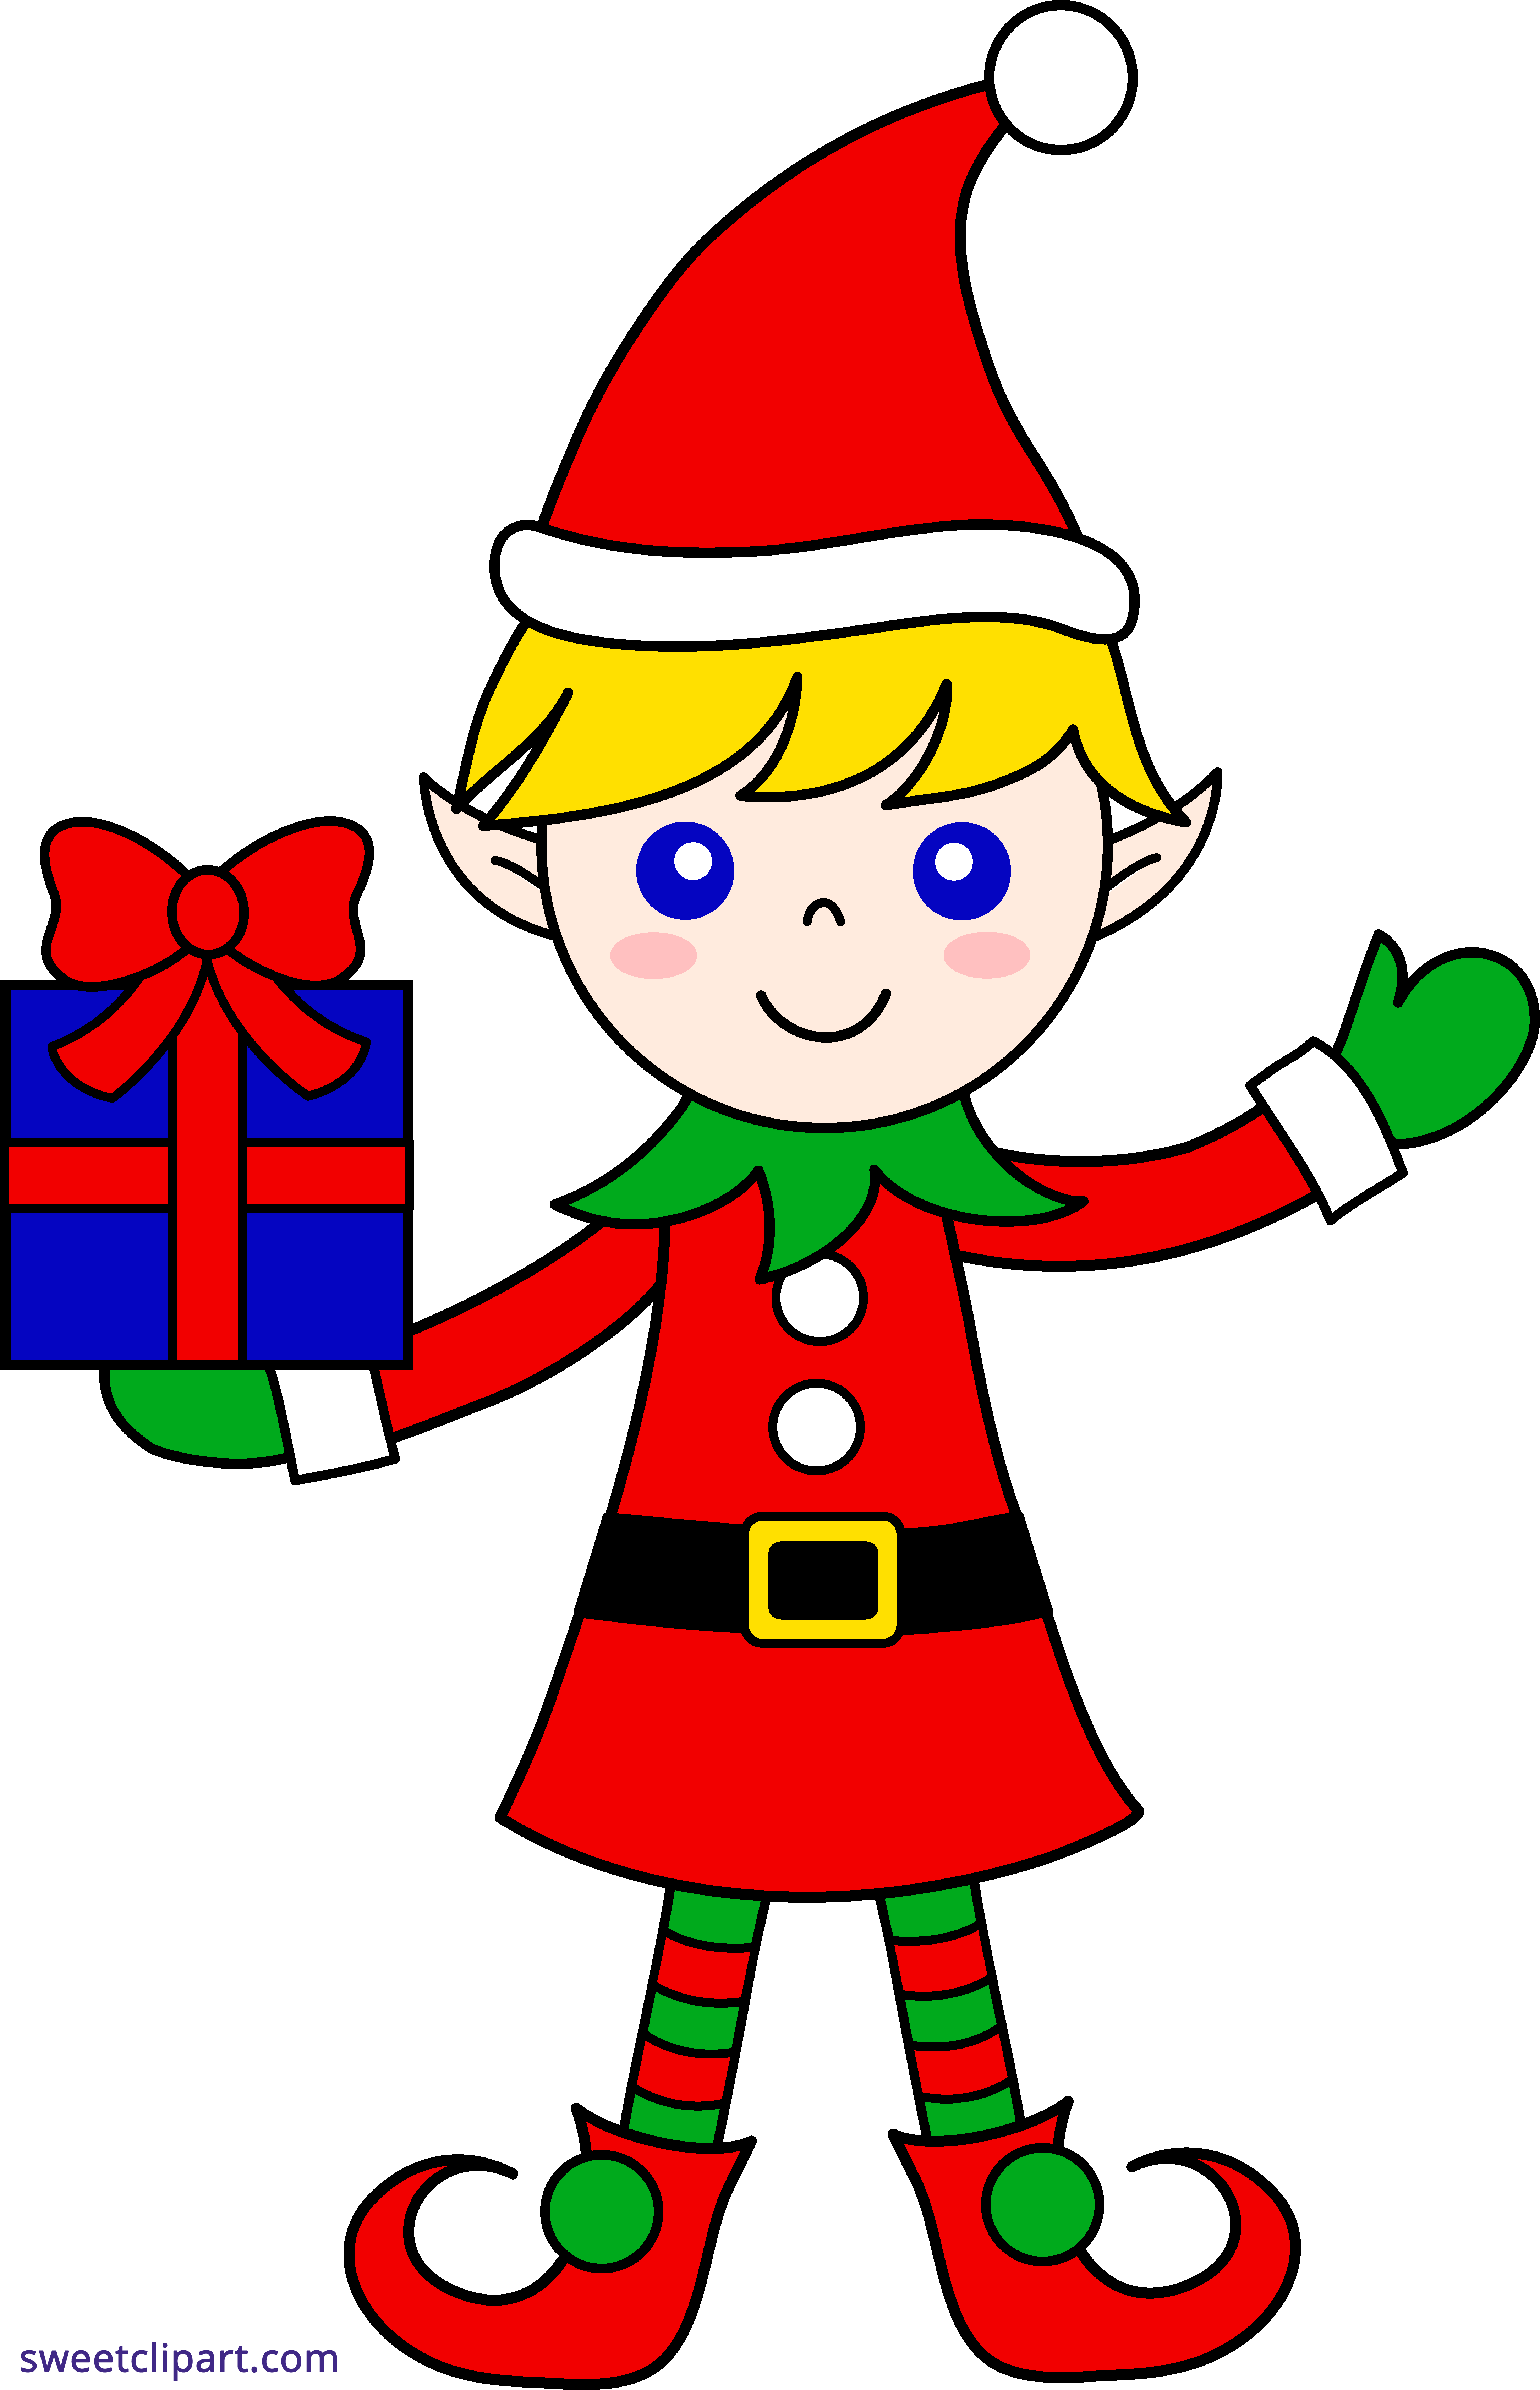 Lunchbox clipart boy. Christmas elf sweet clip